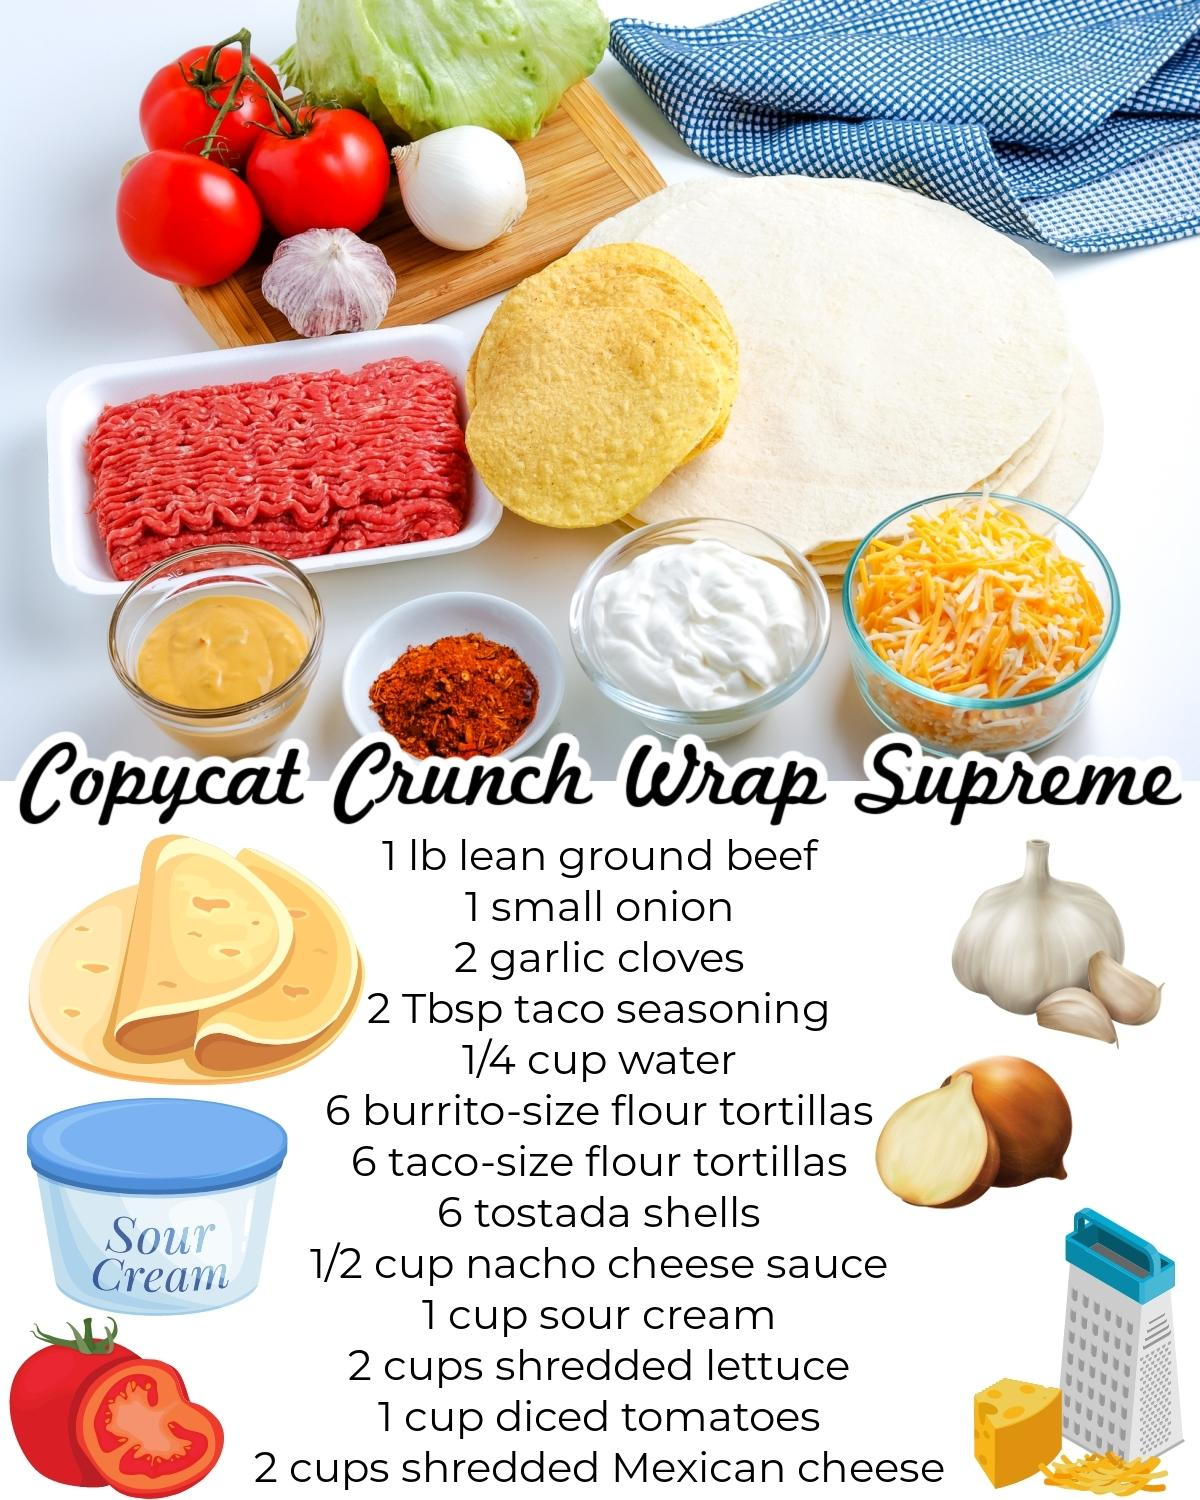 All of the ingredients needed to make this Copycat Taco Bell Crunchwrap Supreme recipe.